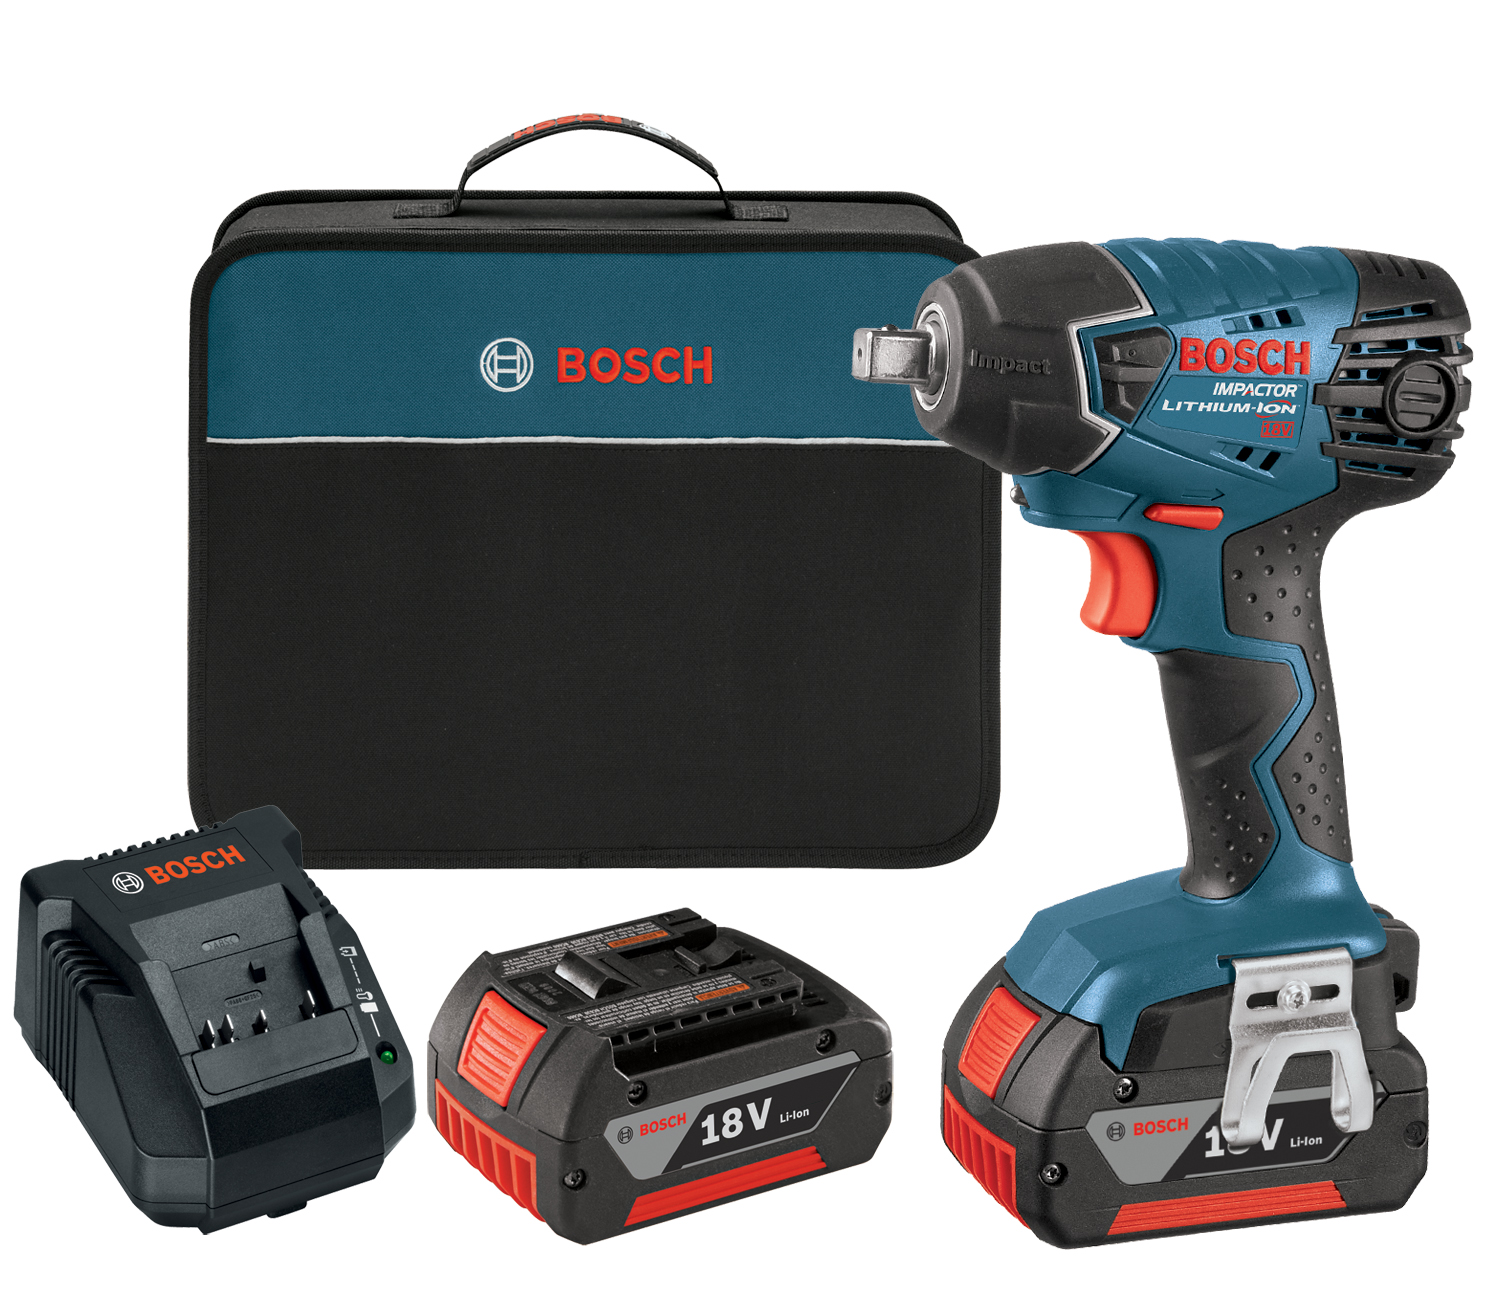 Model: 1/2 In. 18 V Impact Wrench 24618